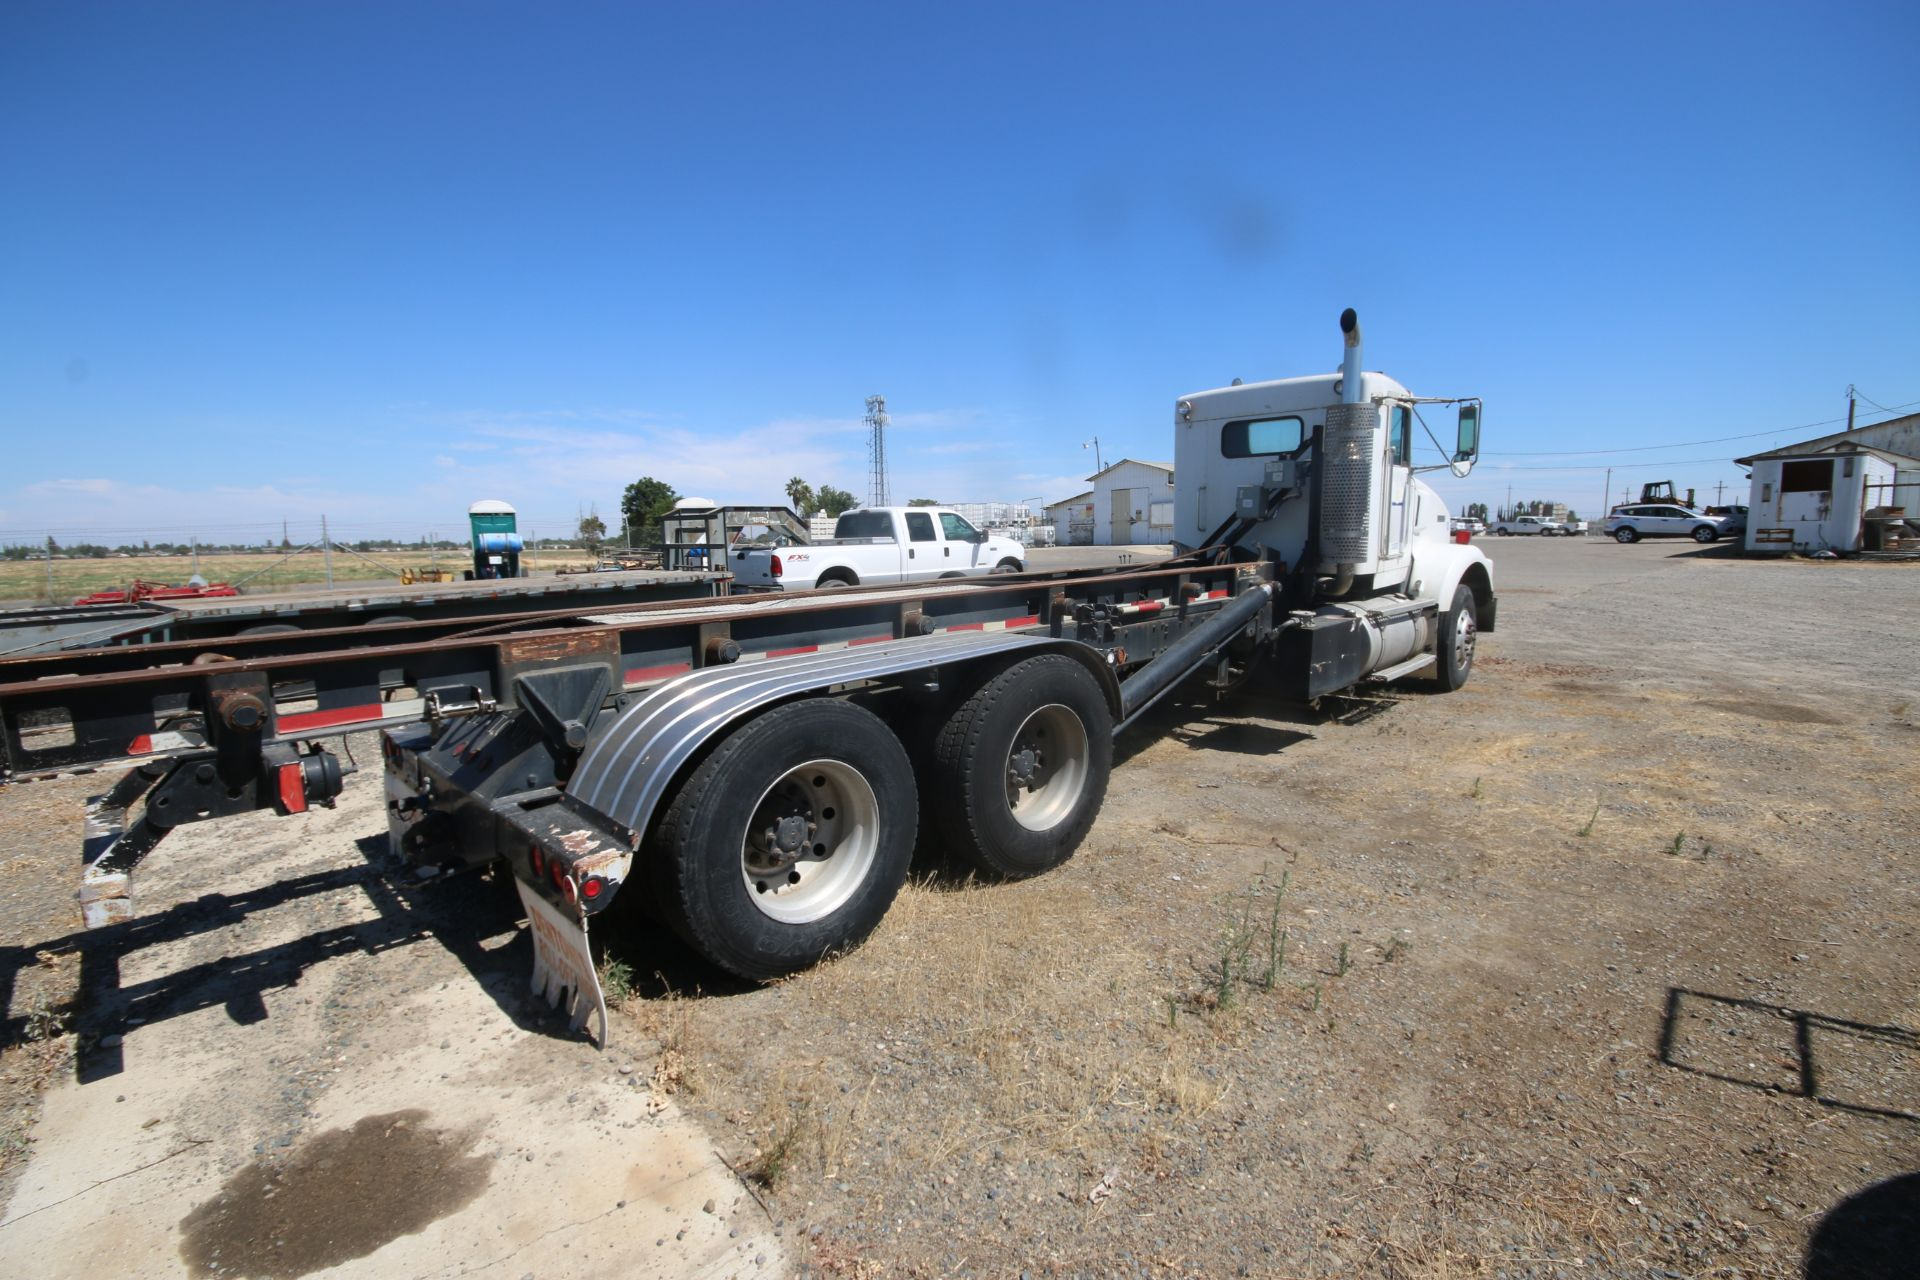 1996 Kenworth 3-Axle Roll-Off Straight Truck, VIN #: 1XKDDB9XOTS687107, with 24,722 Miles, License - Image 3 of 30